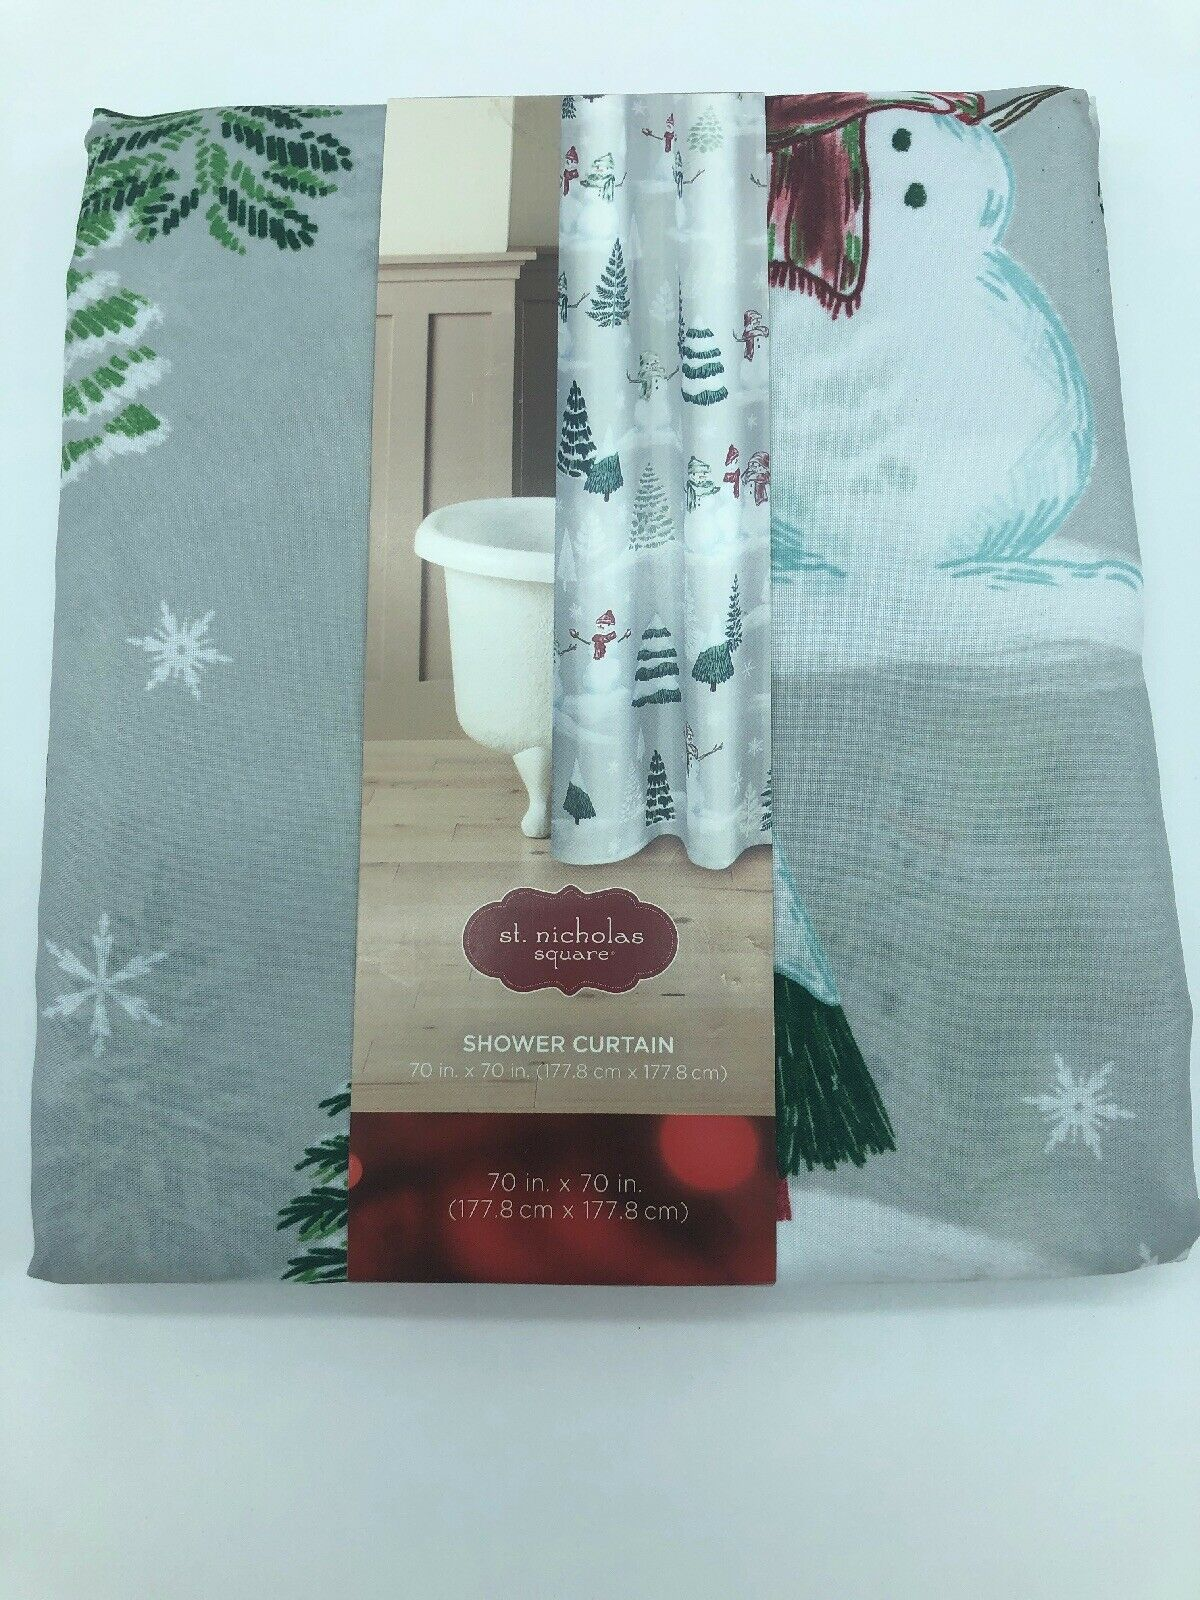 Farmhouse Winter Scenic Fabric Shower Curtain New Snowman St Nicholas Square Nee